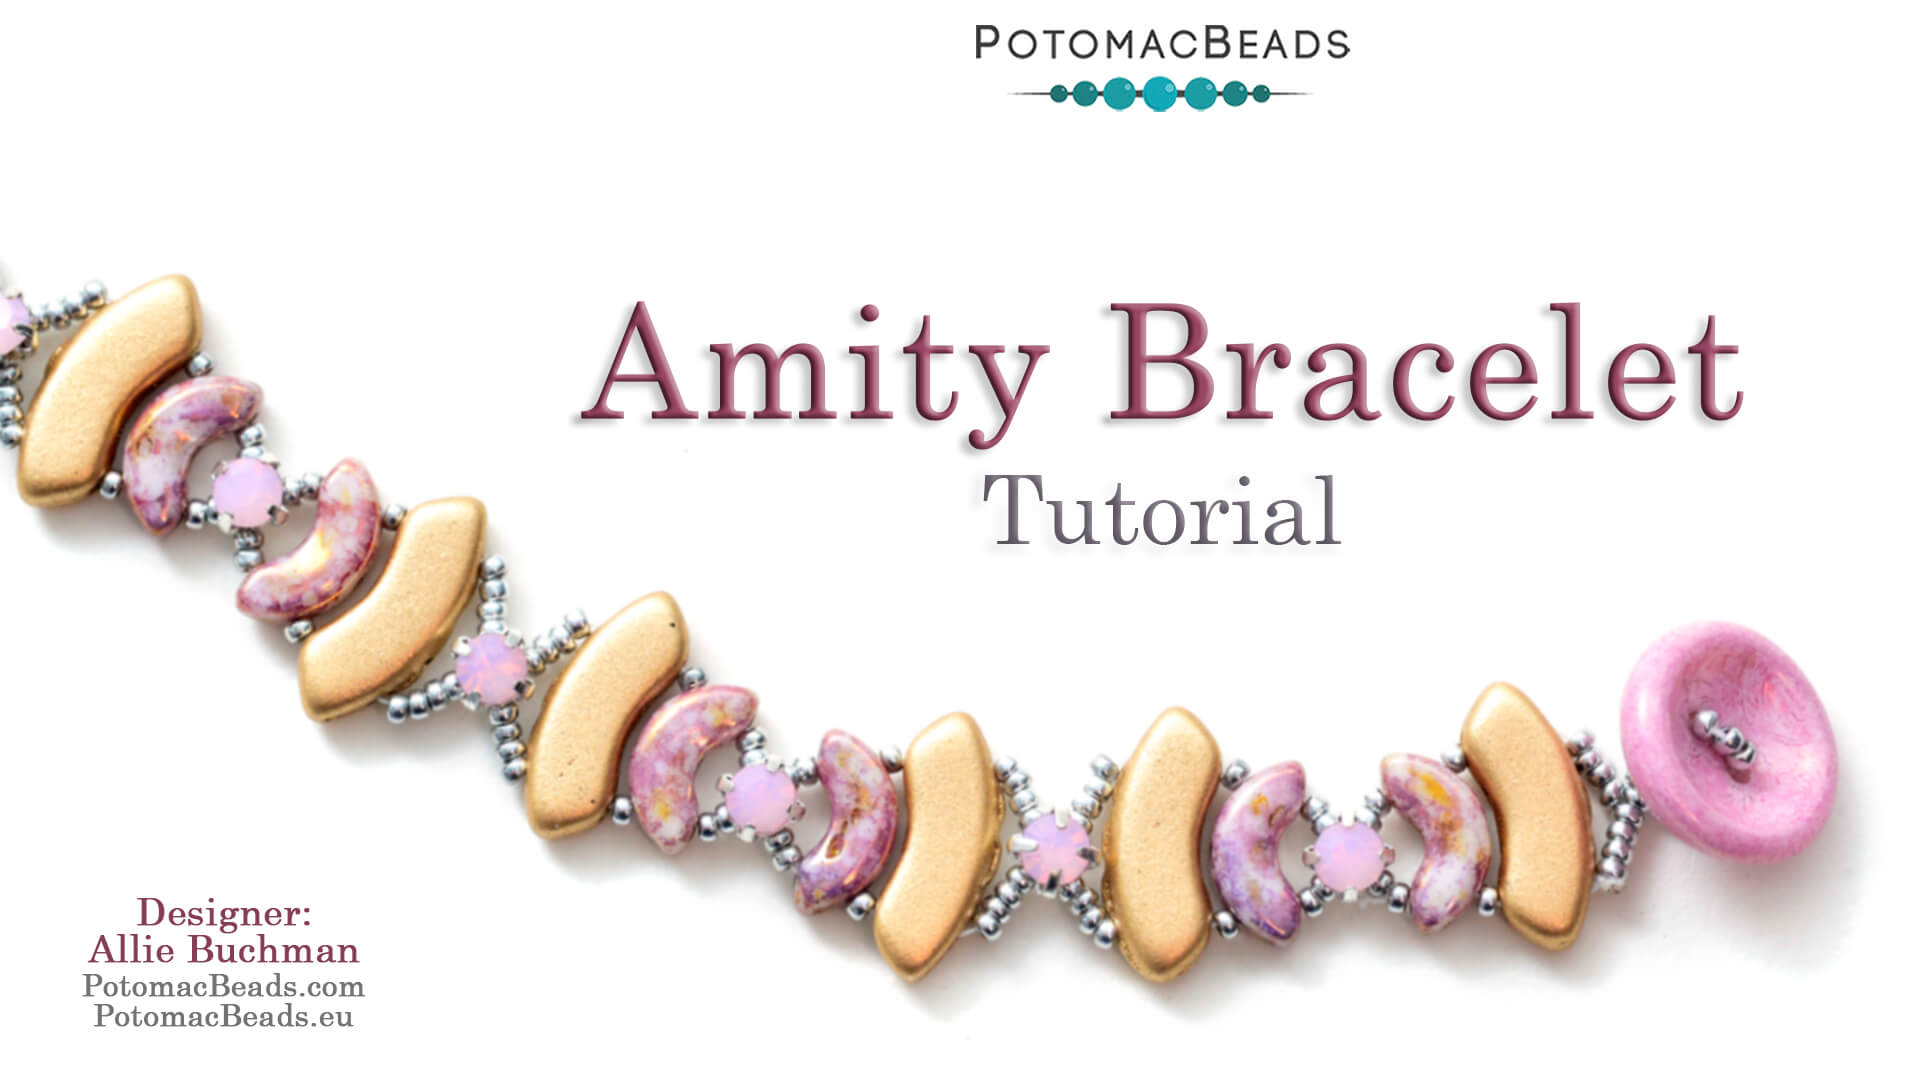 How to Bead Jewelry / Videos Sorted by Beads / Par Puca® Bead Videos / Amity Bracelet Tutorial